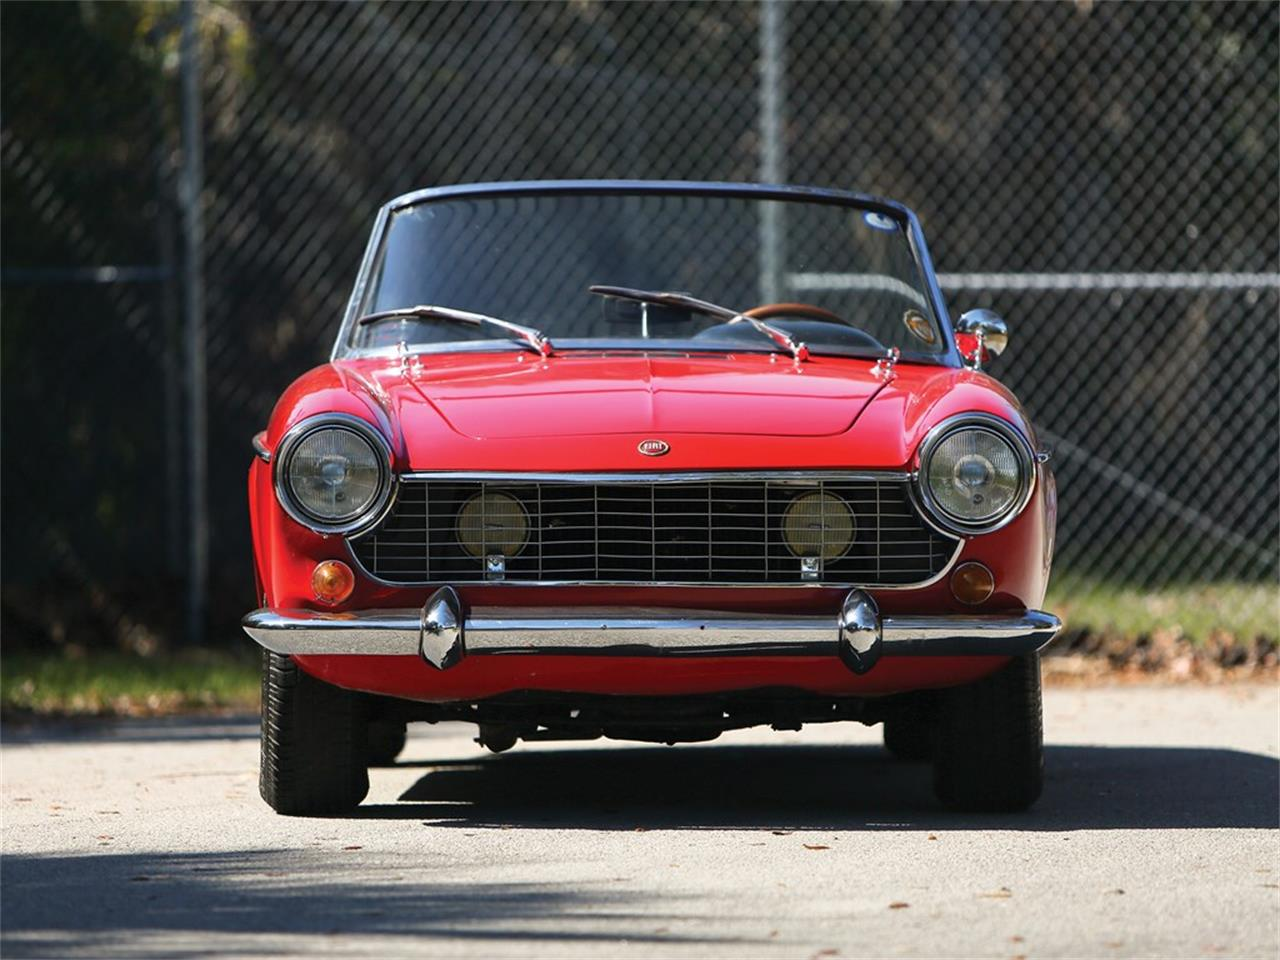 1965 Fiat Abarth 1500 for sale in Fort Lauderdale, FL – photo 9